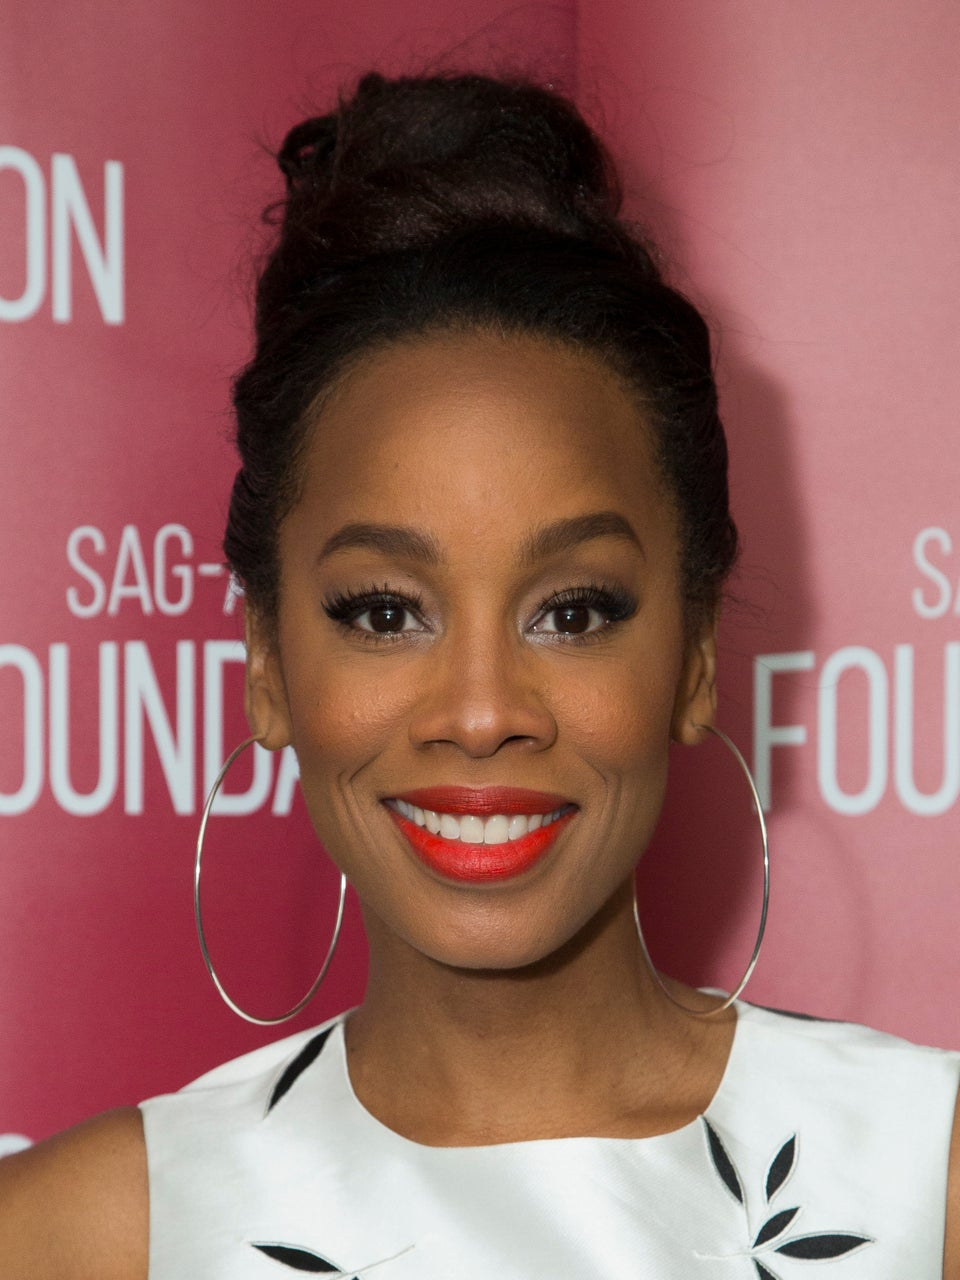 Anika Noni Rose Nailed This Perfect Summer Look—Here's How You Can Too!